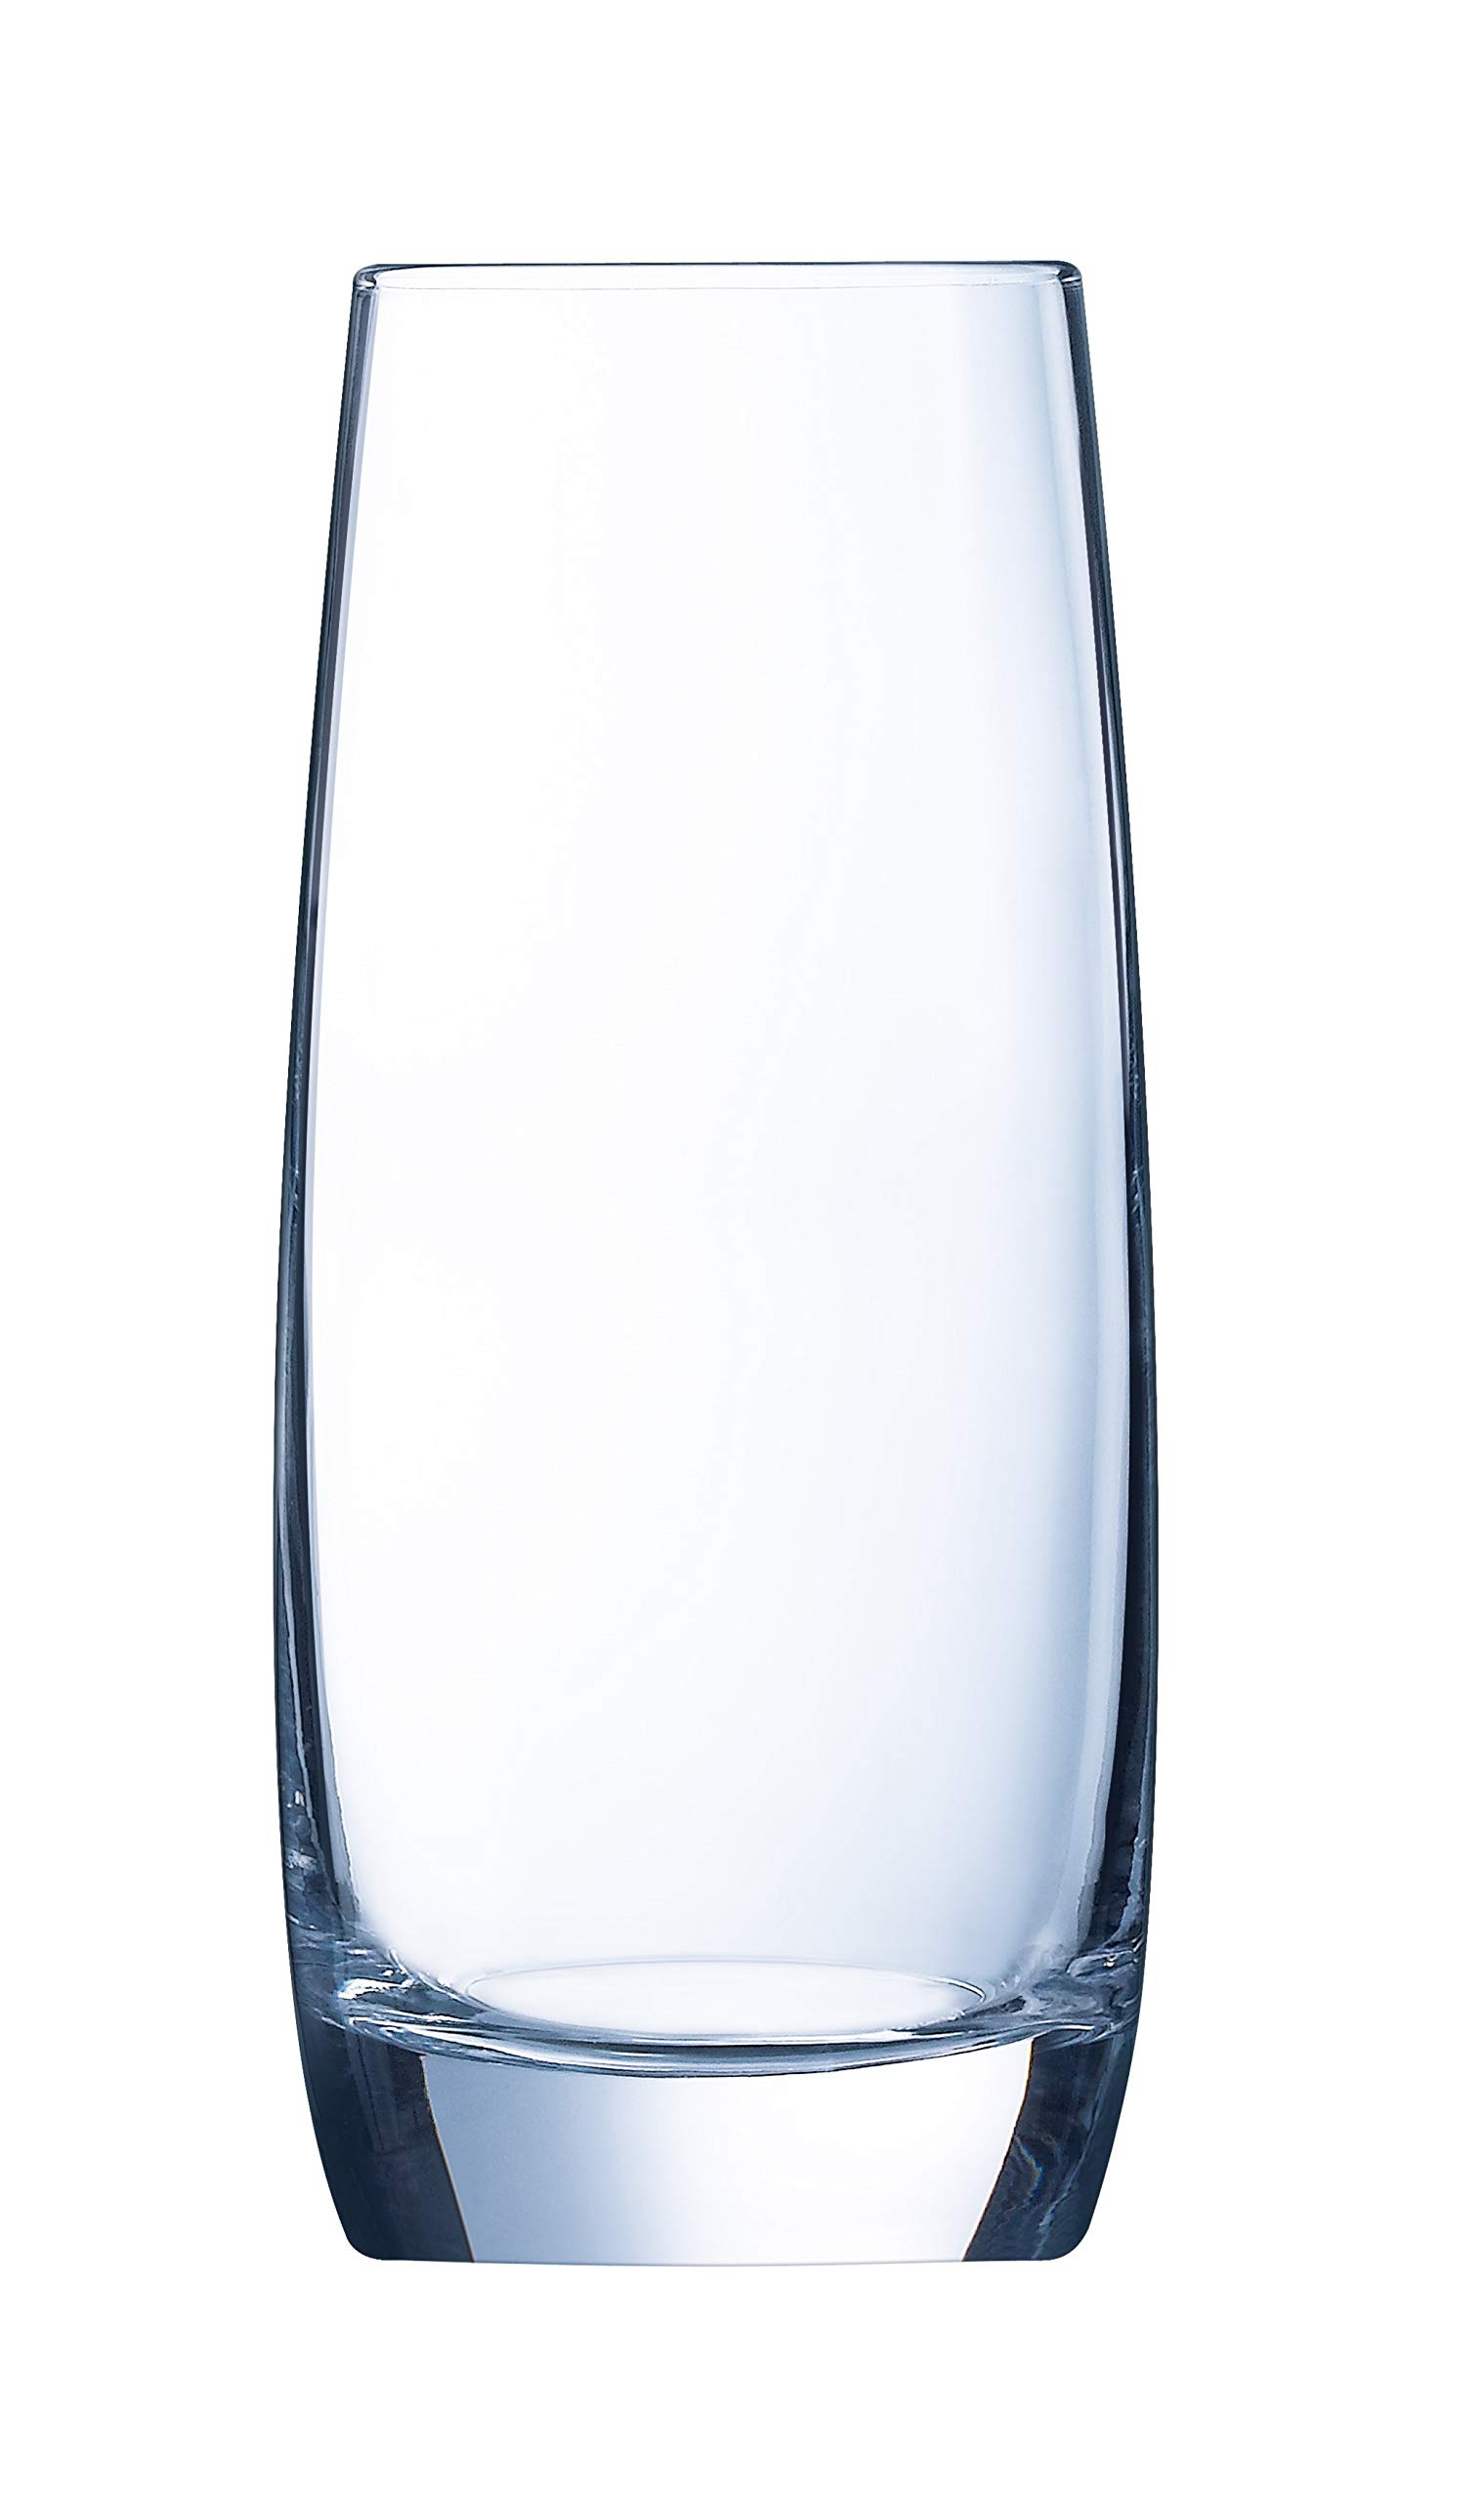 Chef&Sommelier L9238 Chef & Sommelier Domaine 16 Ounce Cooler Glass, Set of 6, 16 oz, Clear by Chef&Sommelier